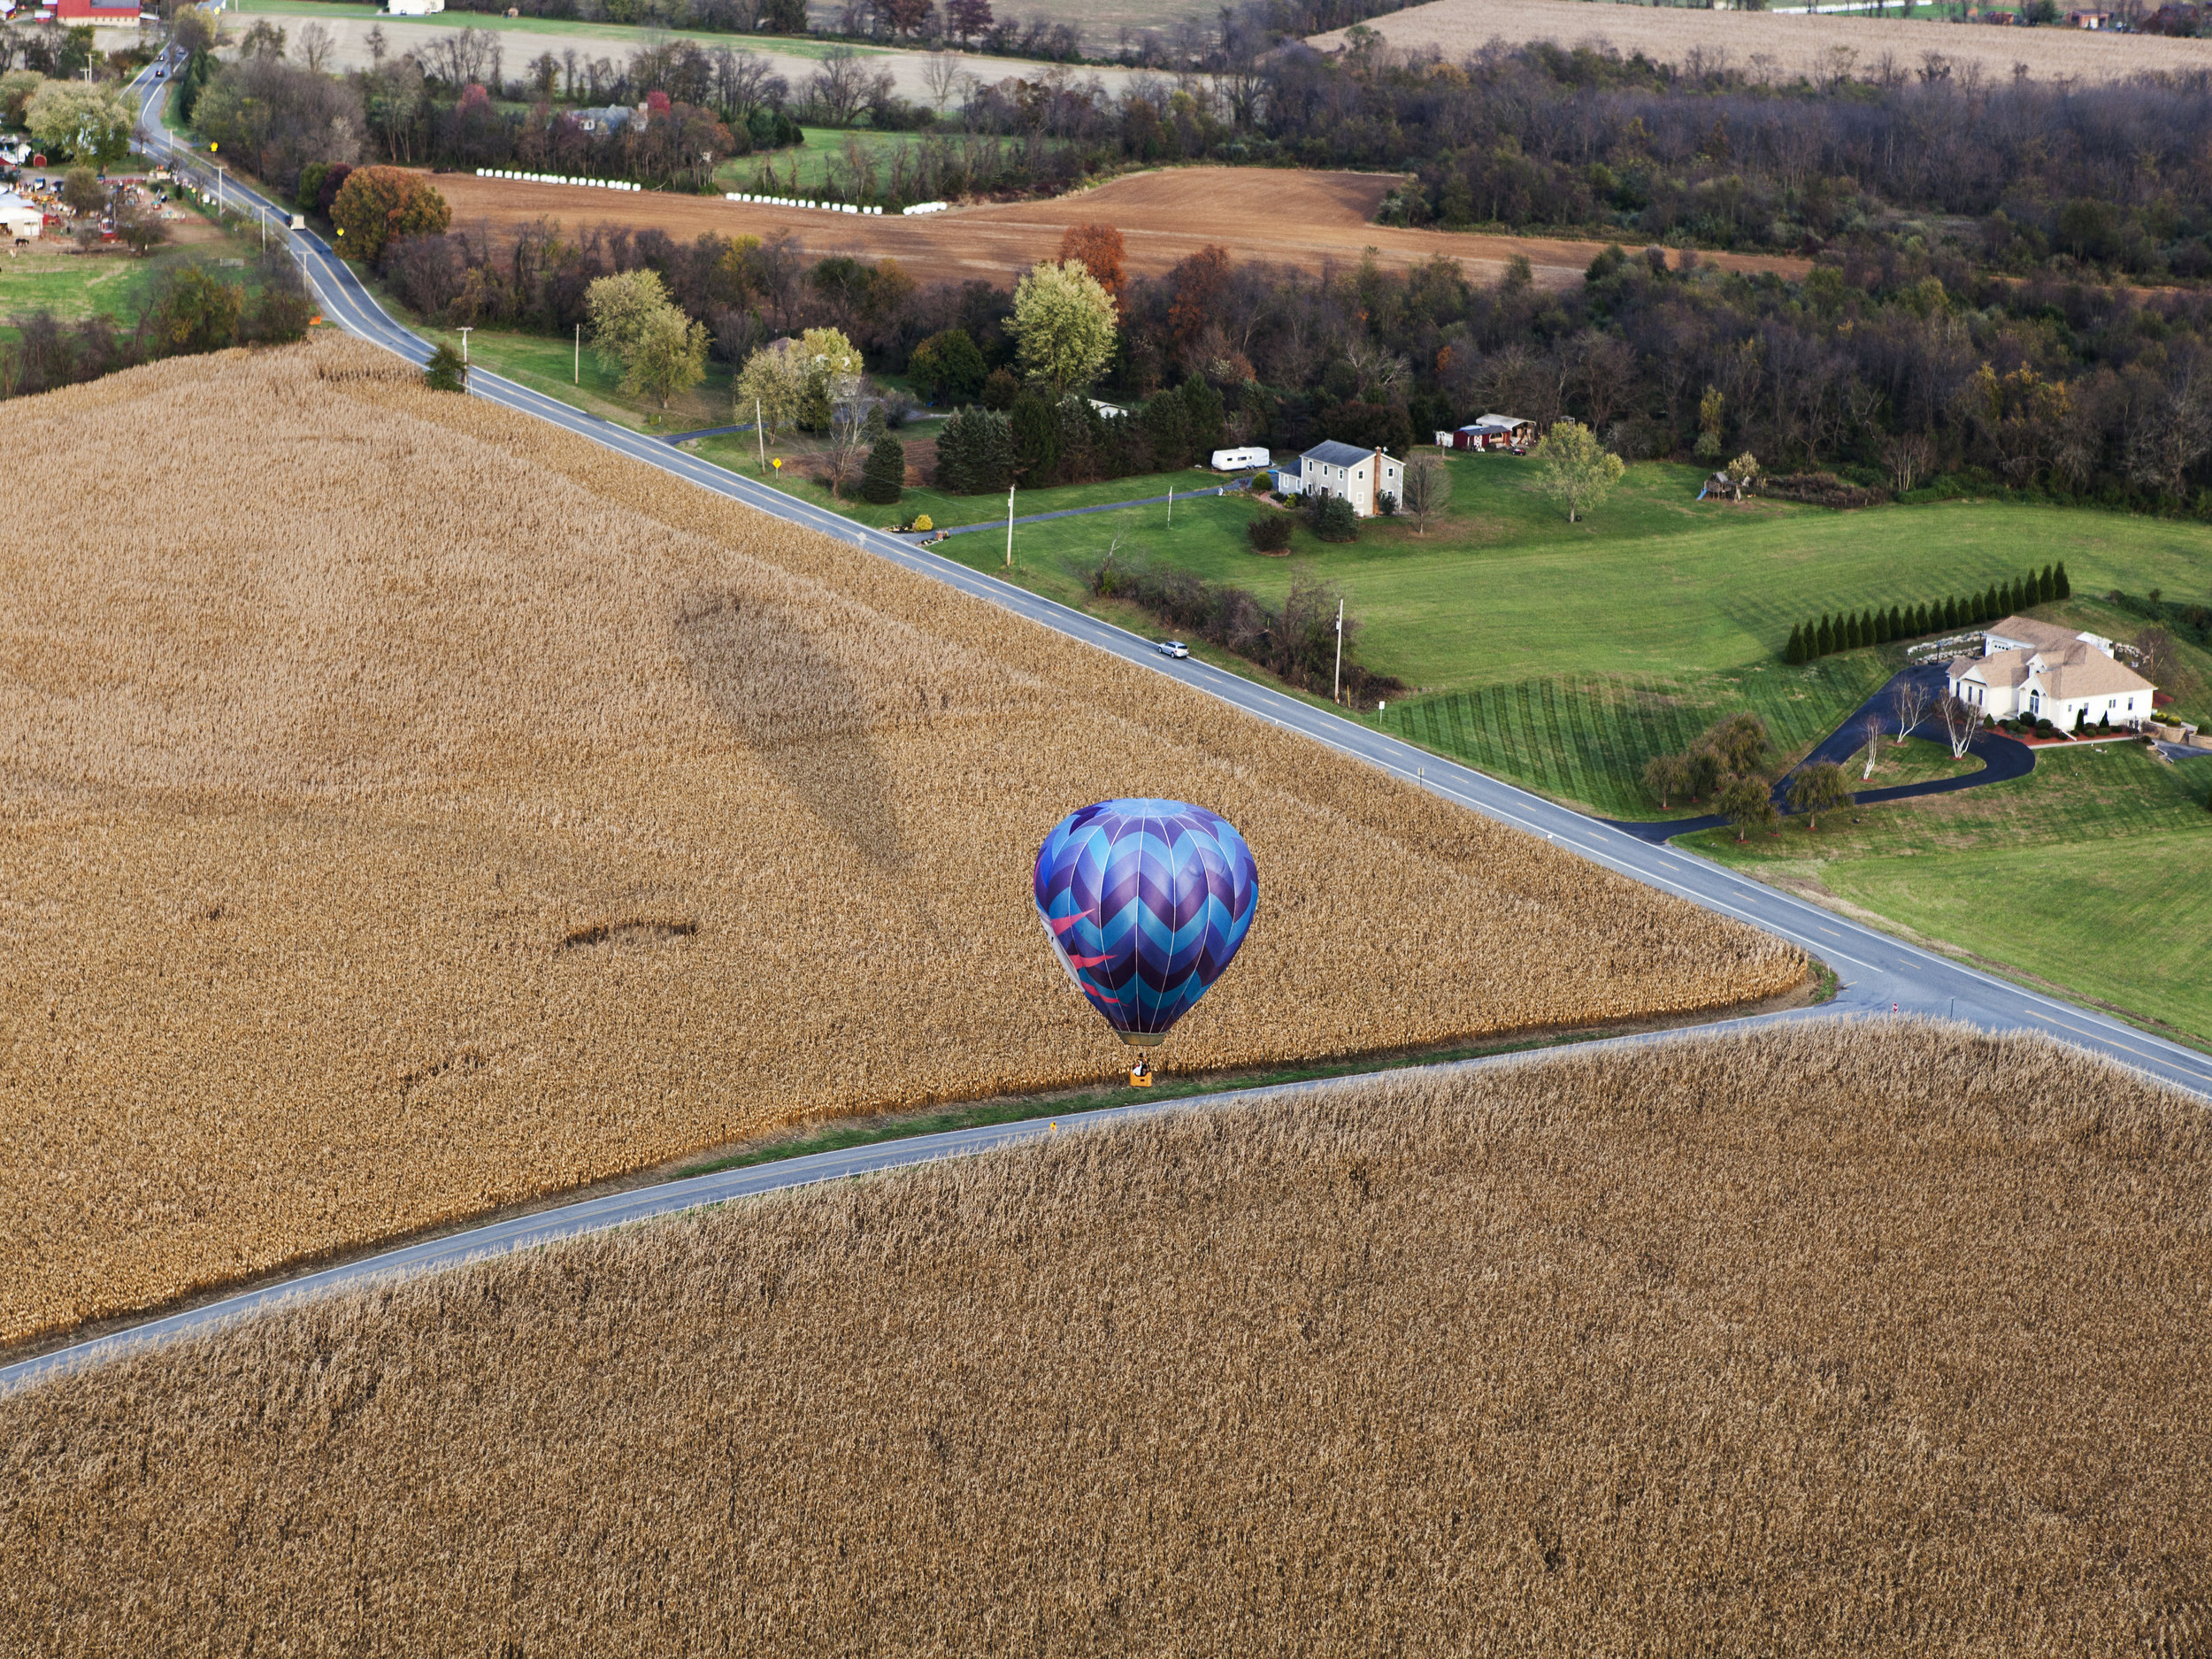 Hot Air Balloon-313.jpg